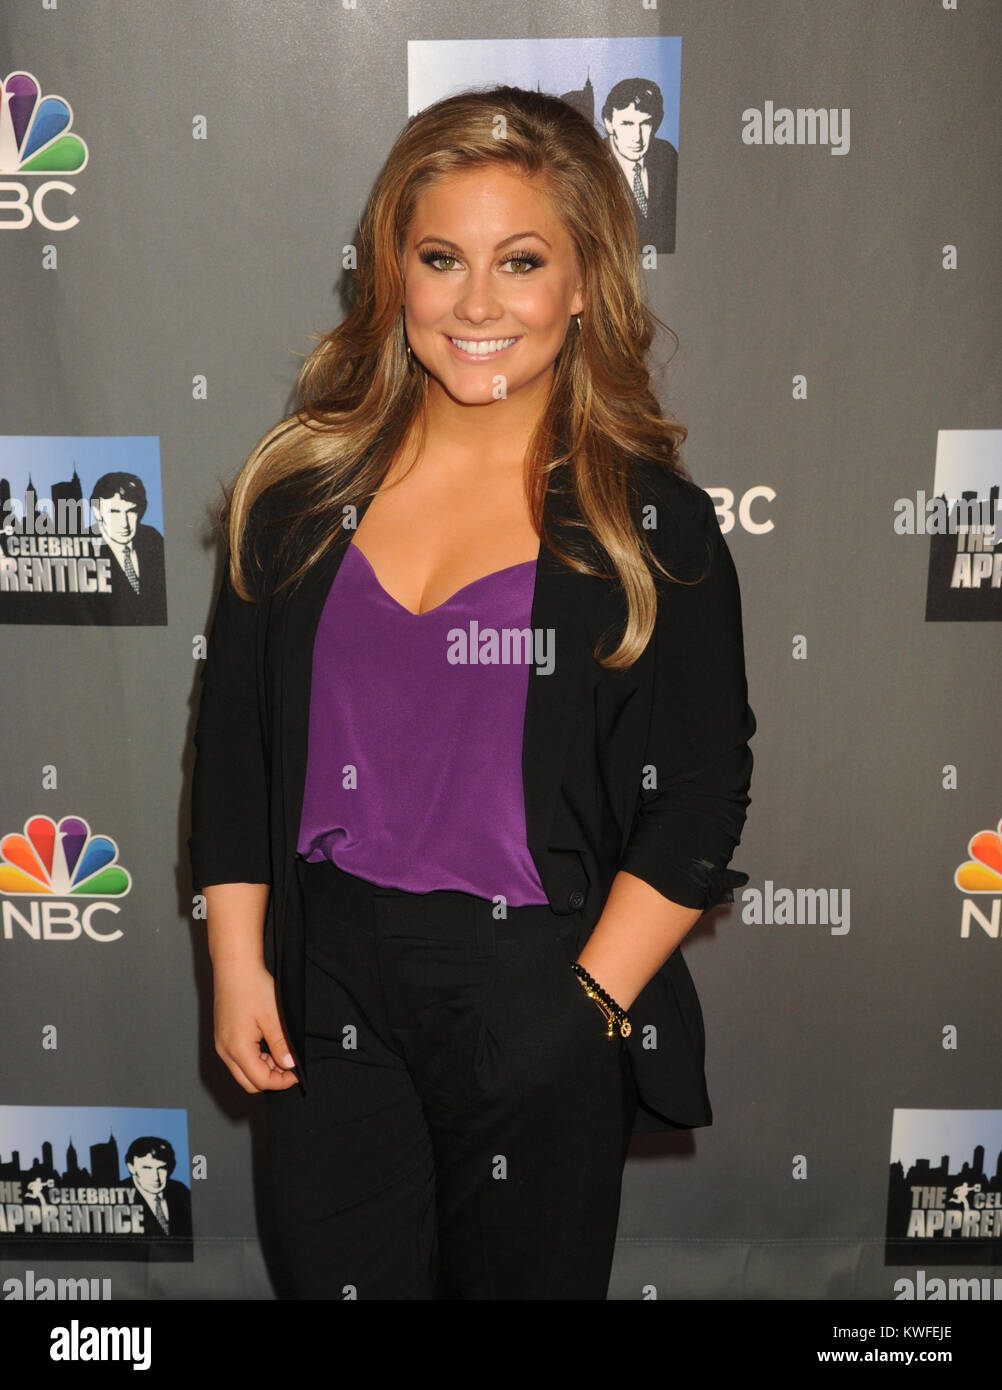 The Celebrity Apprentice 2013 RECAP 4/14/13: Season 6 ...